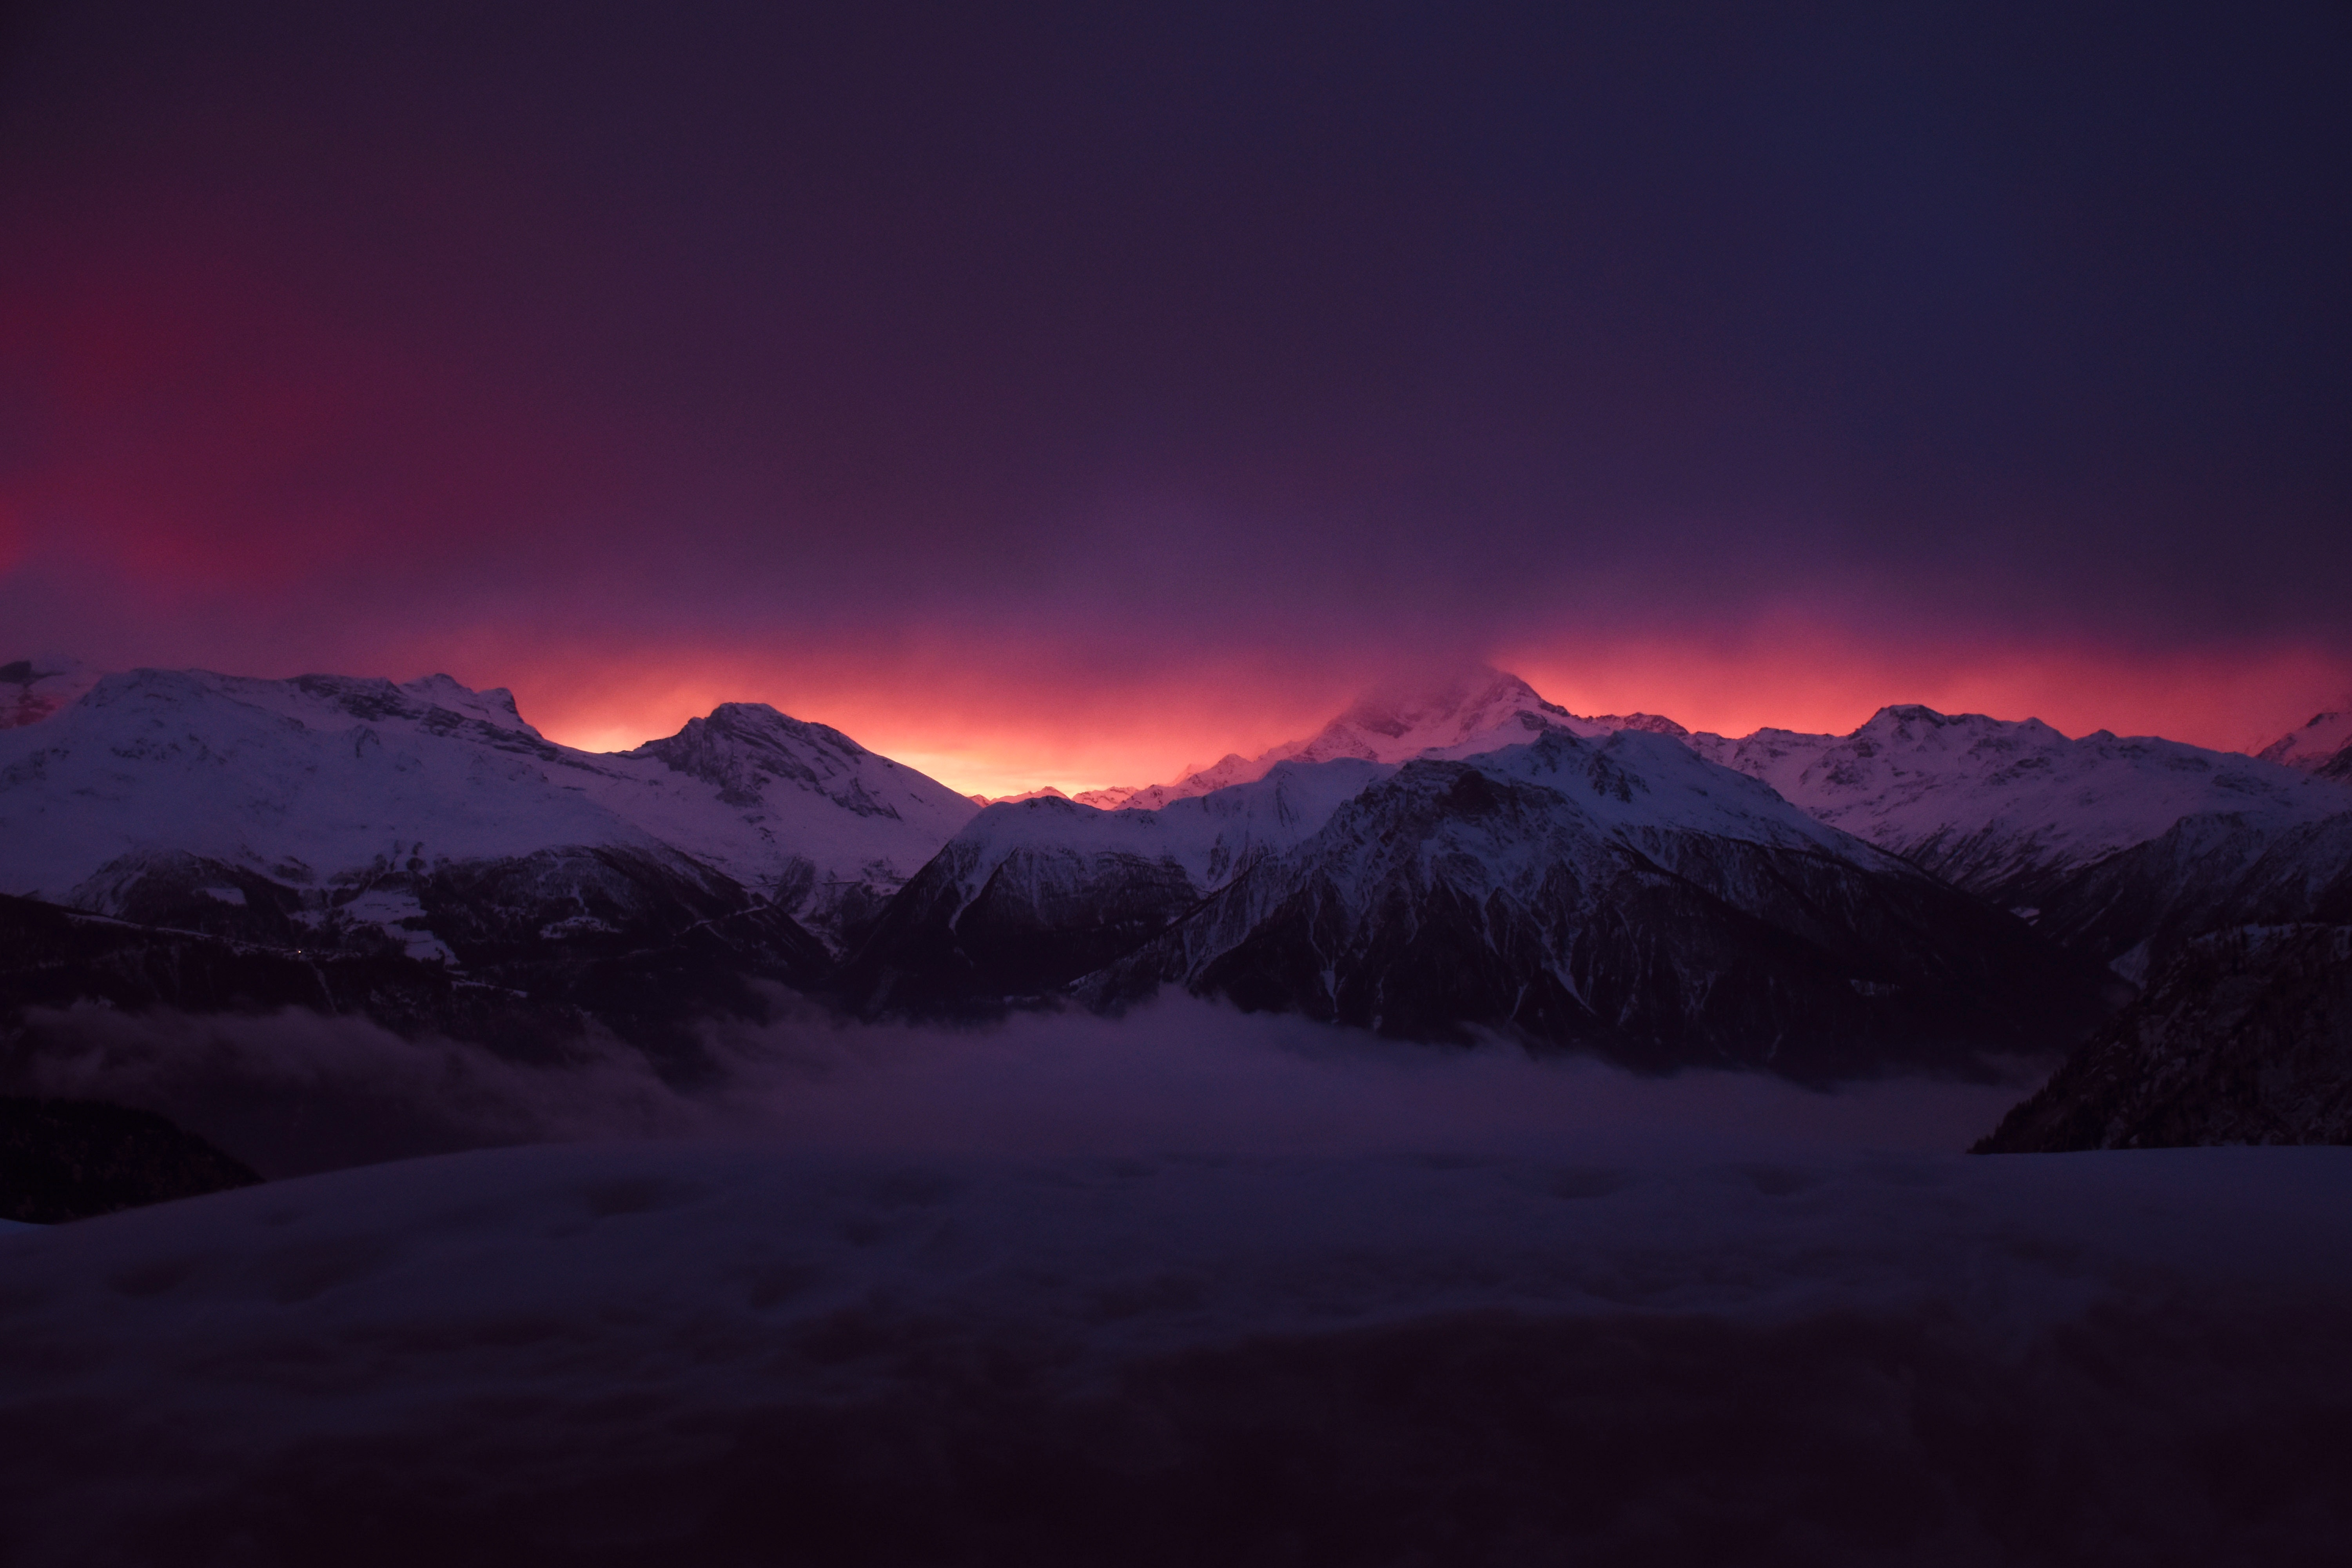 85344 download wallpaper Dark, Sky, Nature, Sunset, Mountains, Clouds, Fog, Snow Covered, Snowbound, Vertices screensavers and pictures for free